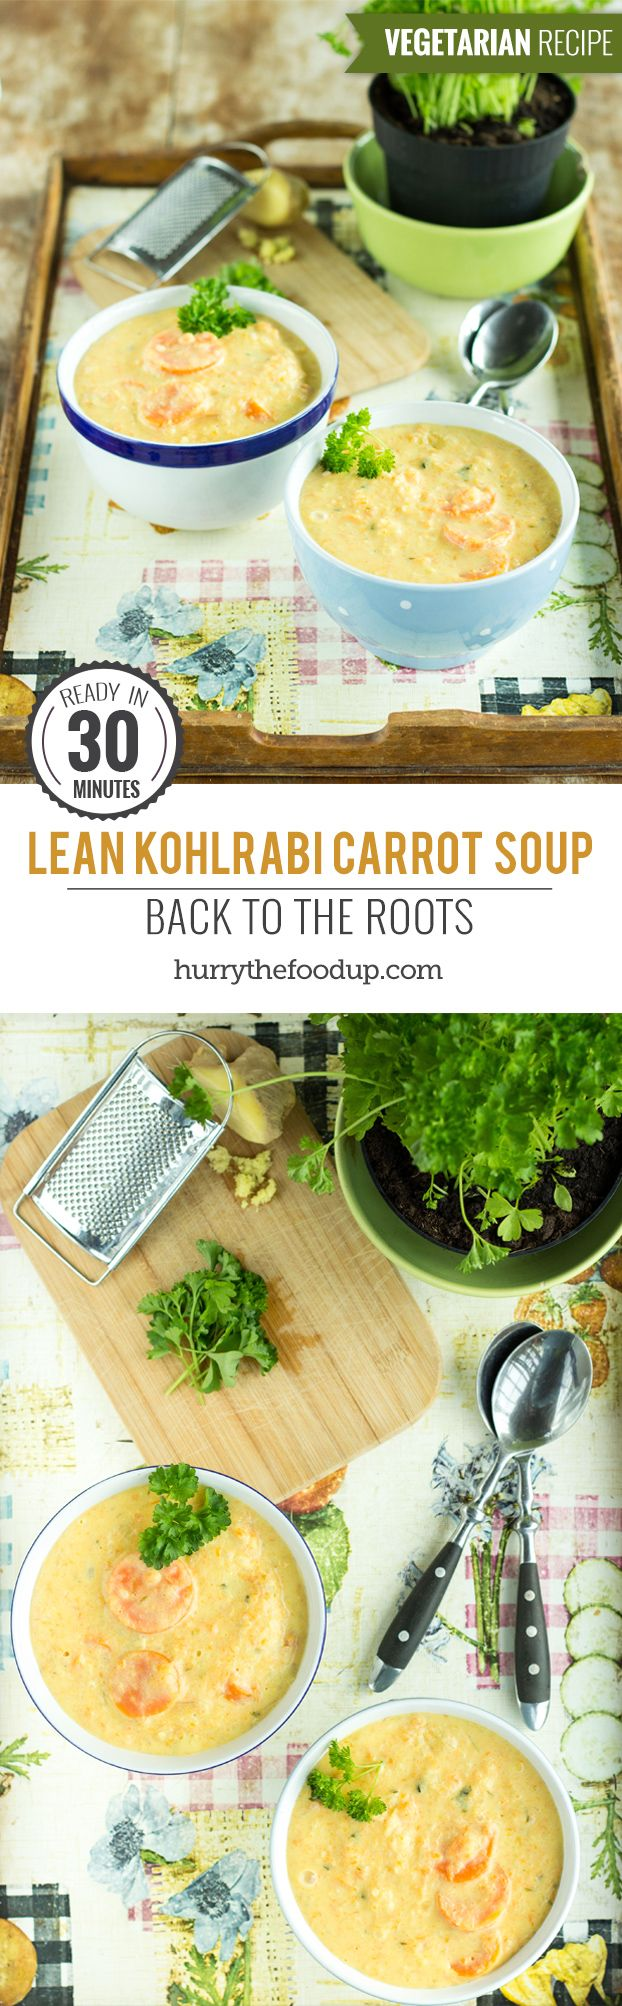 Lean Kohlrabi Carrot Soup - Back To The Roots. Ready in 30 minutes | #soup #vegetarian | hurrythefoodup.com